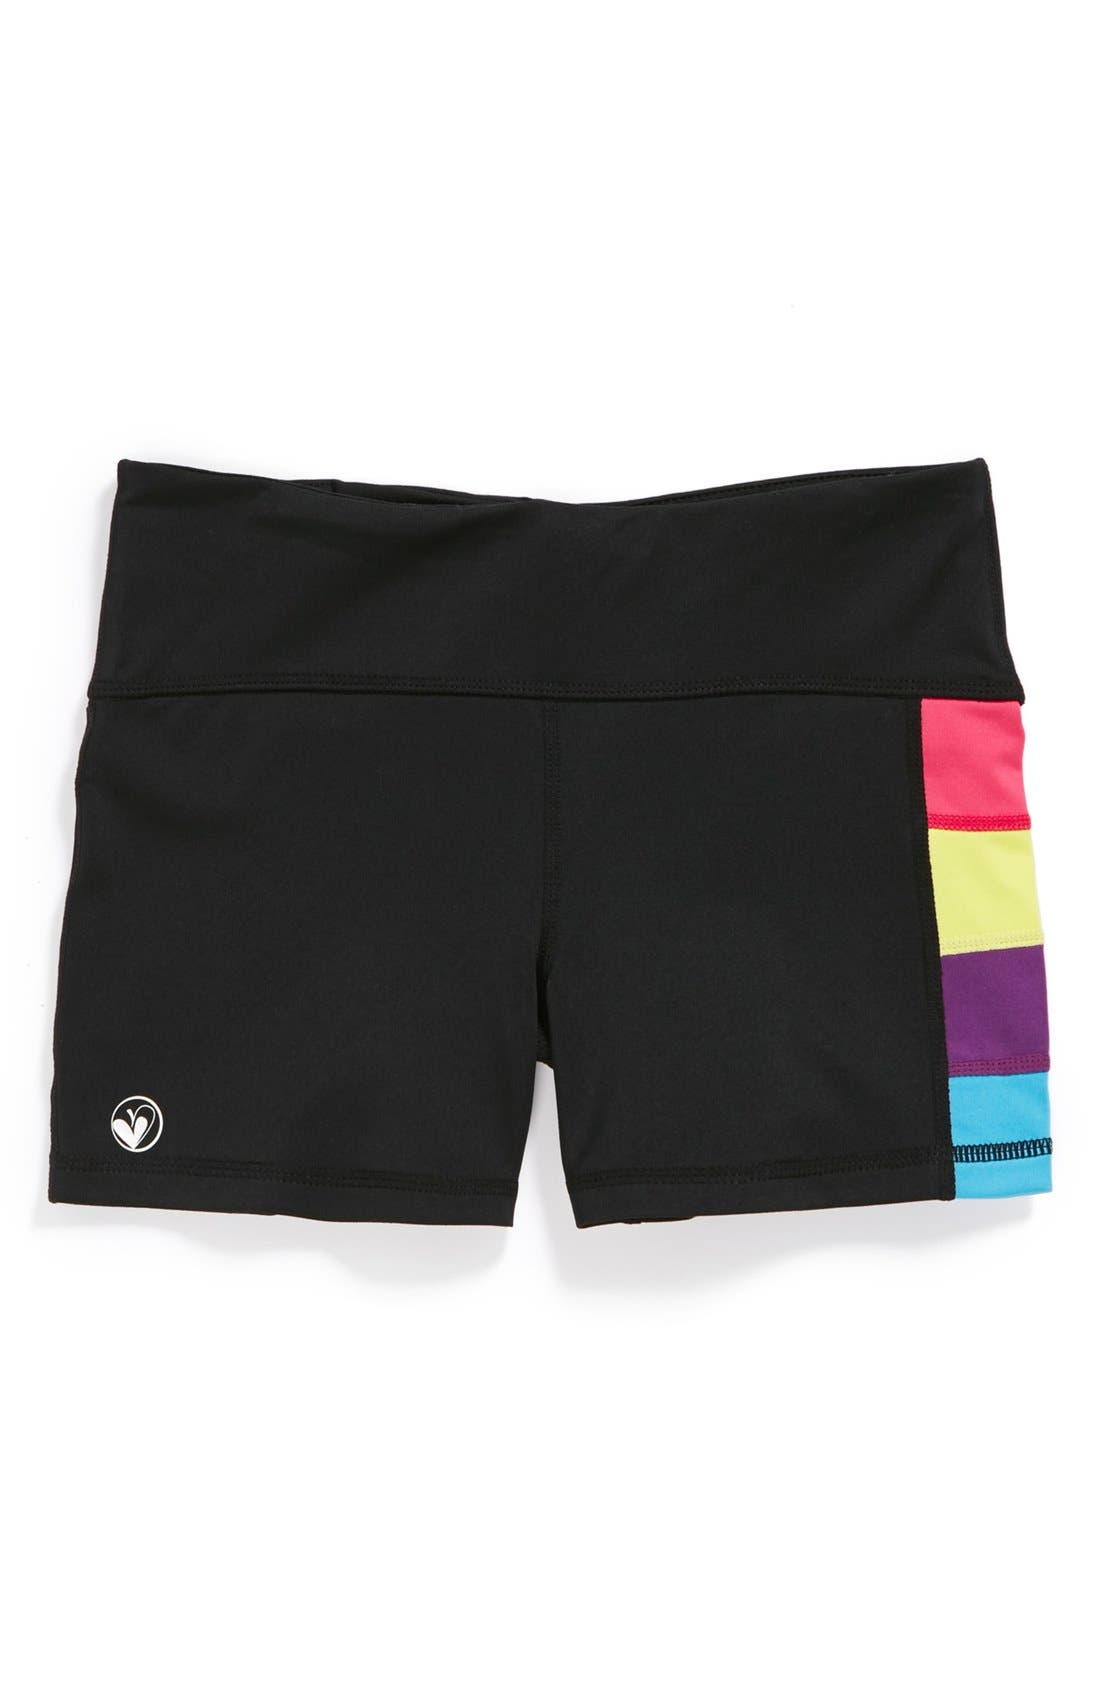 Alternate Image 1 Selected - Limeapple Sporty Stripe Stretch Shorts (Little Girls & Big Girls)